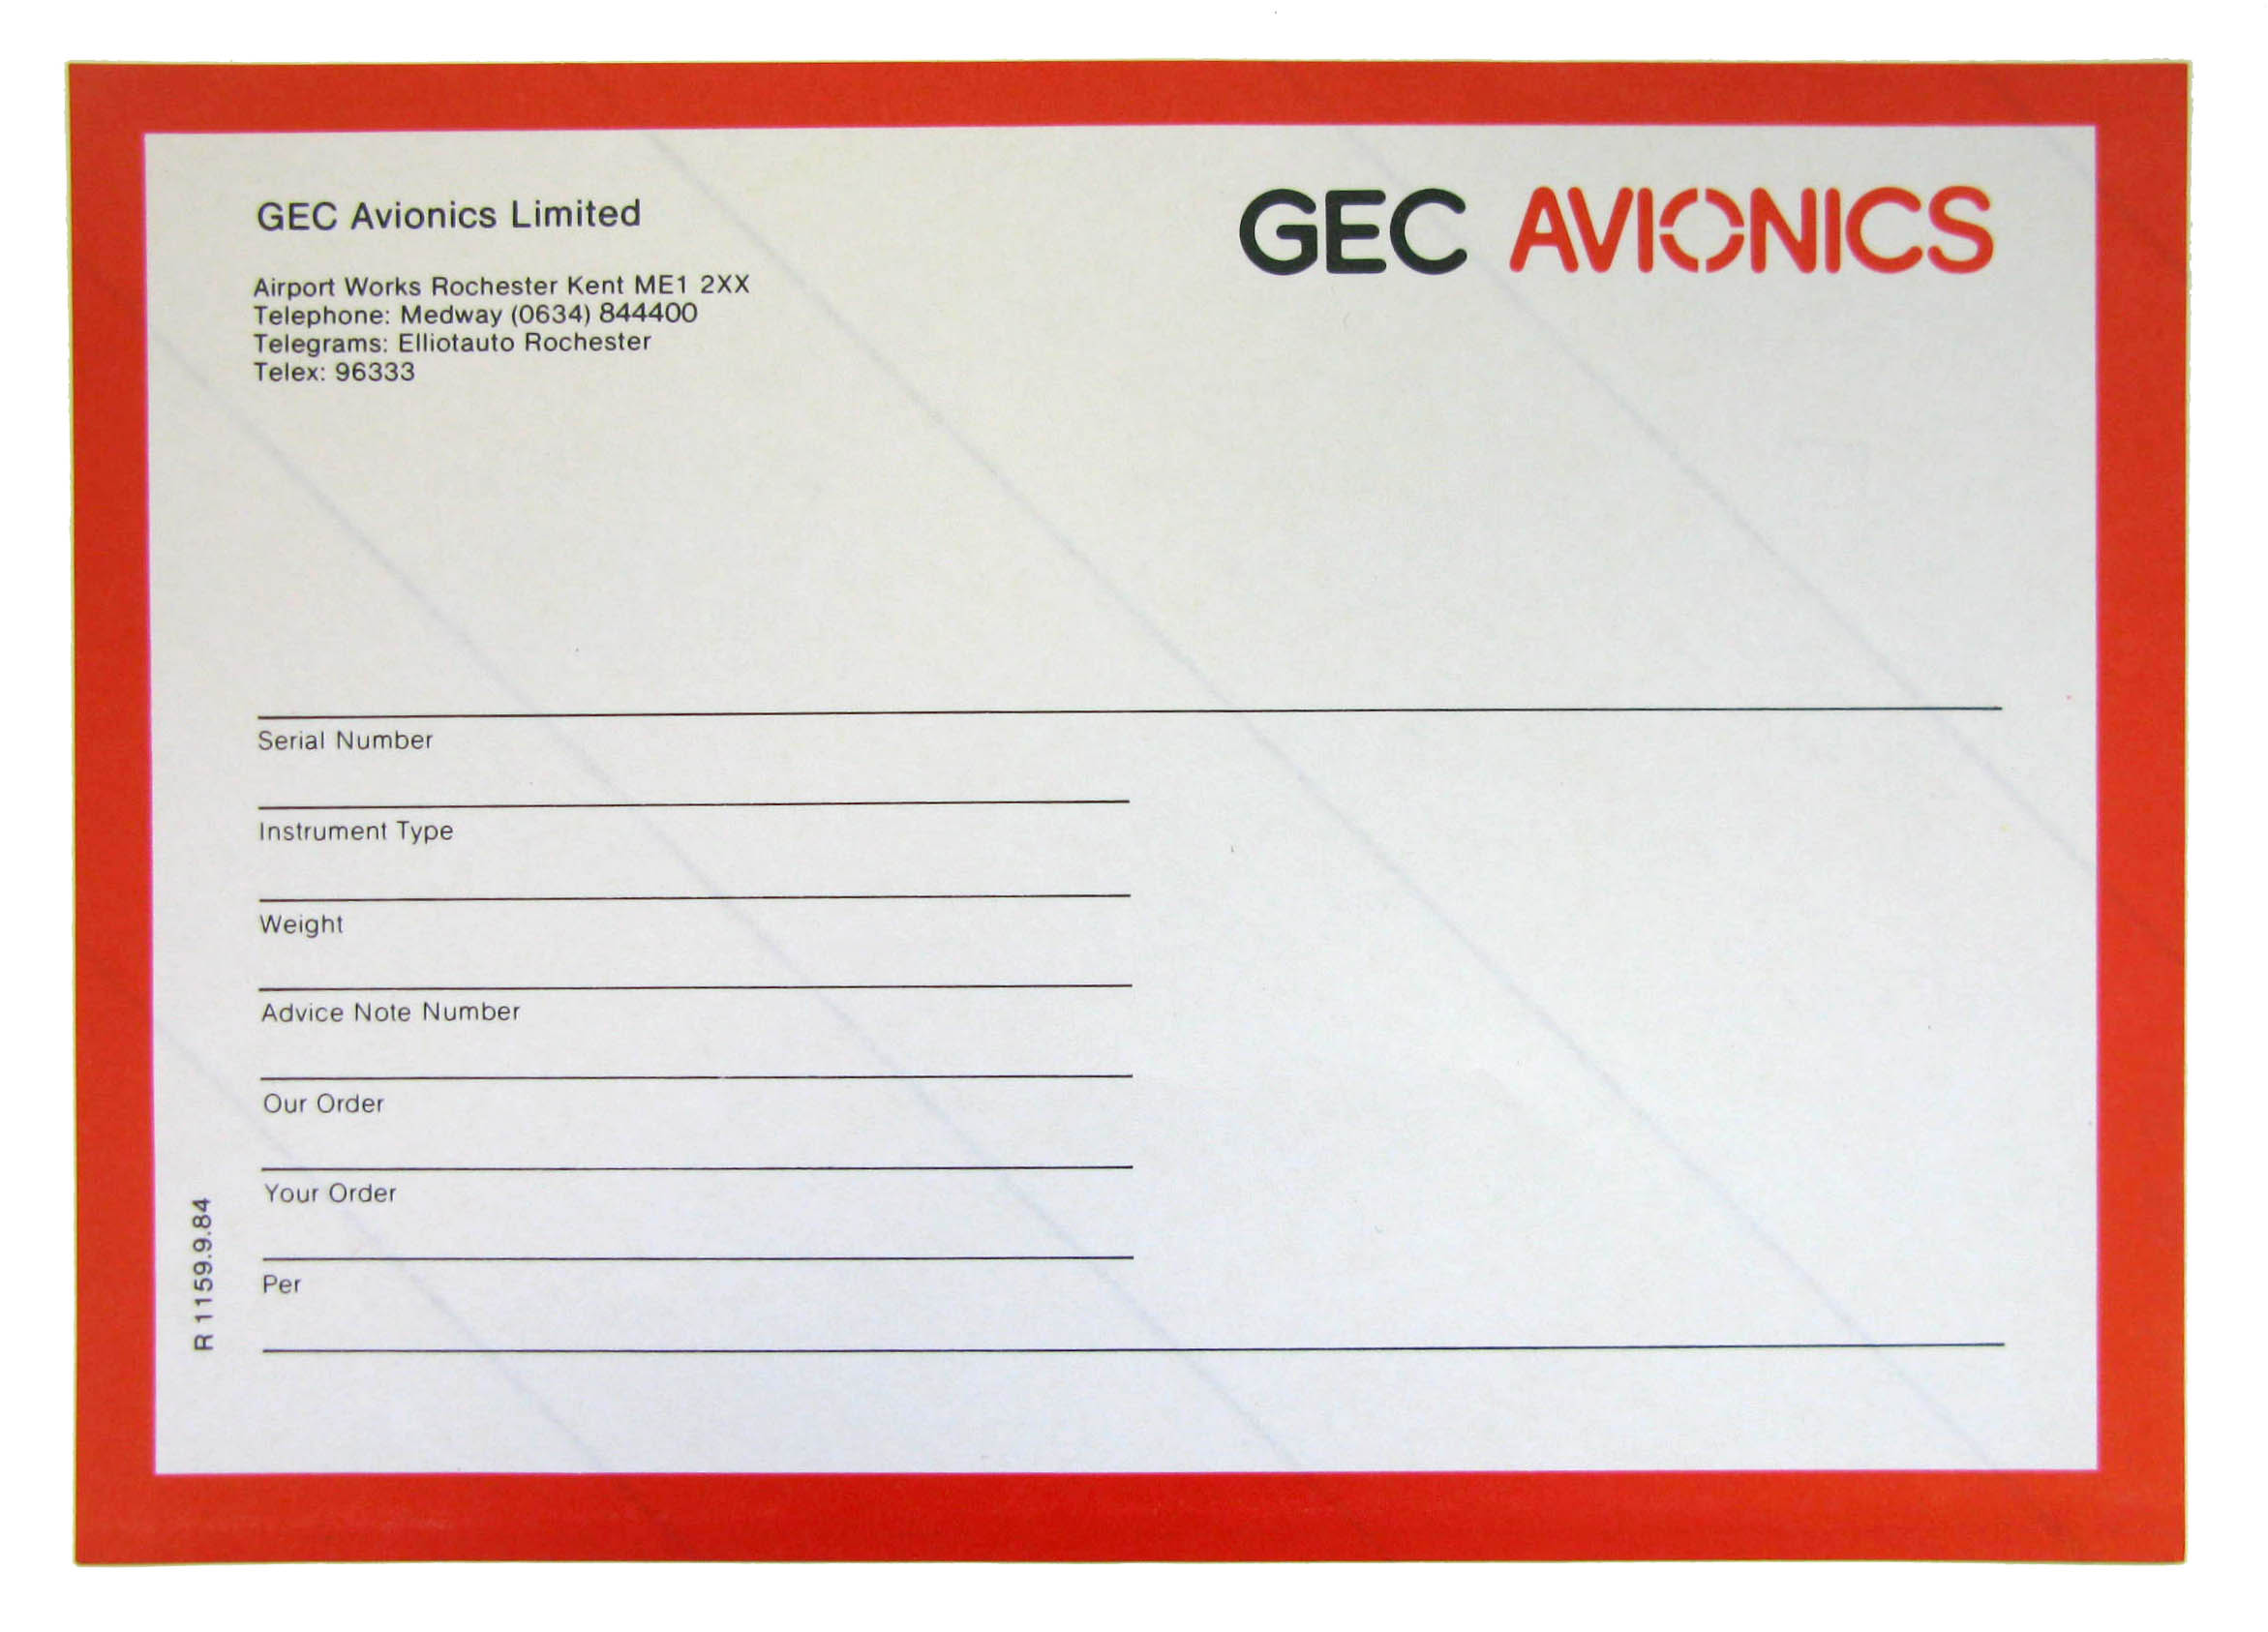 GEC Avionics shipping labels